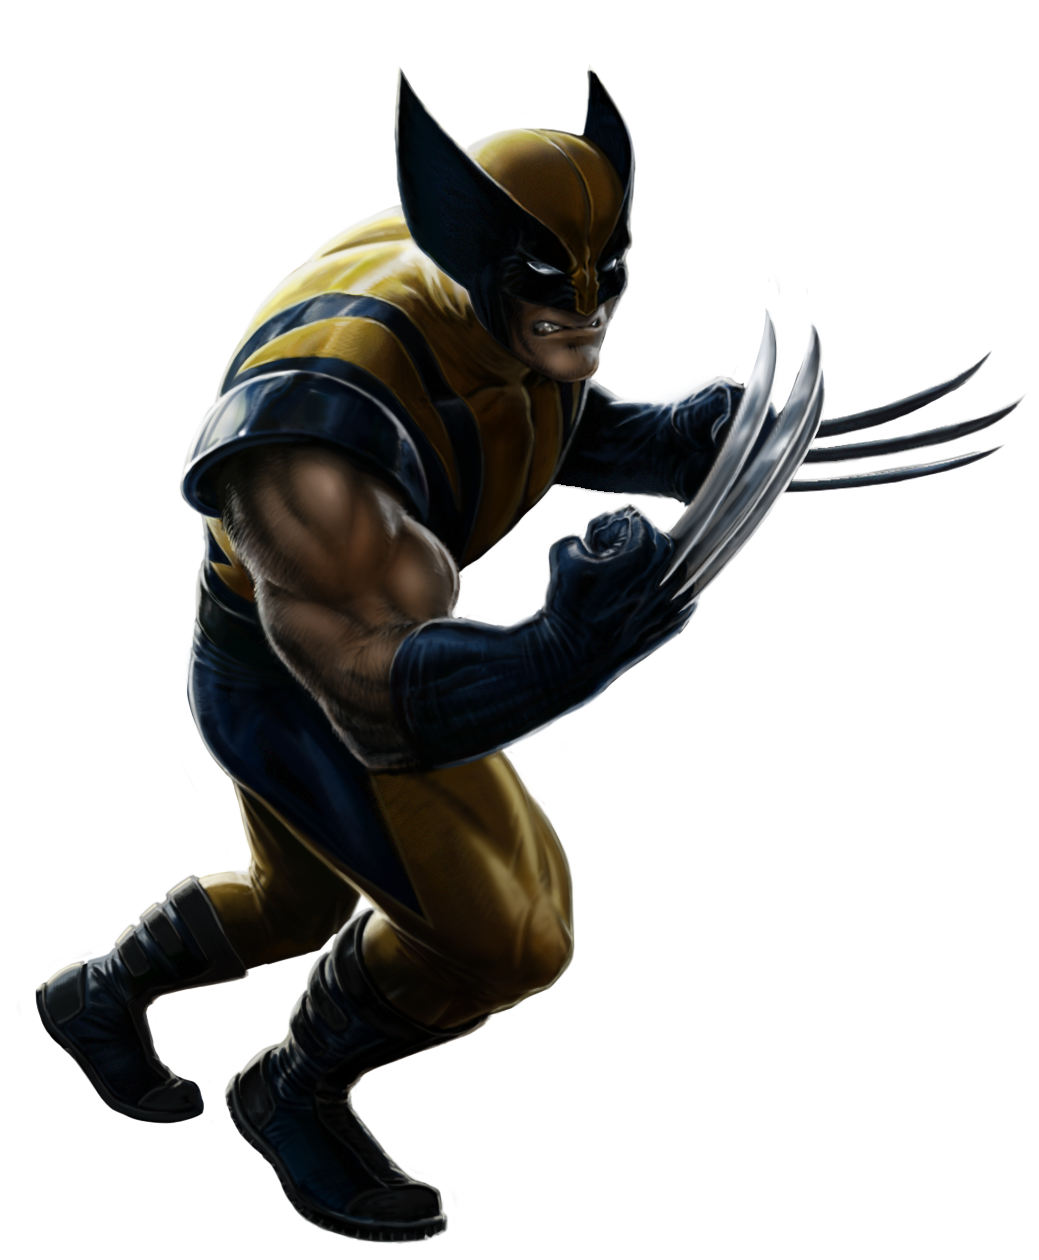 Wolverine marvel png. Image sneak peek artwork